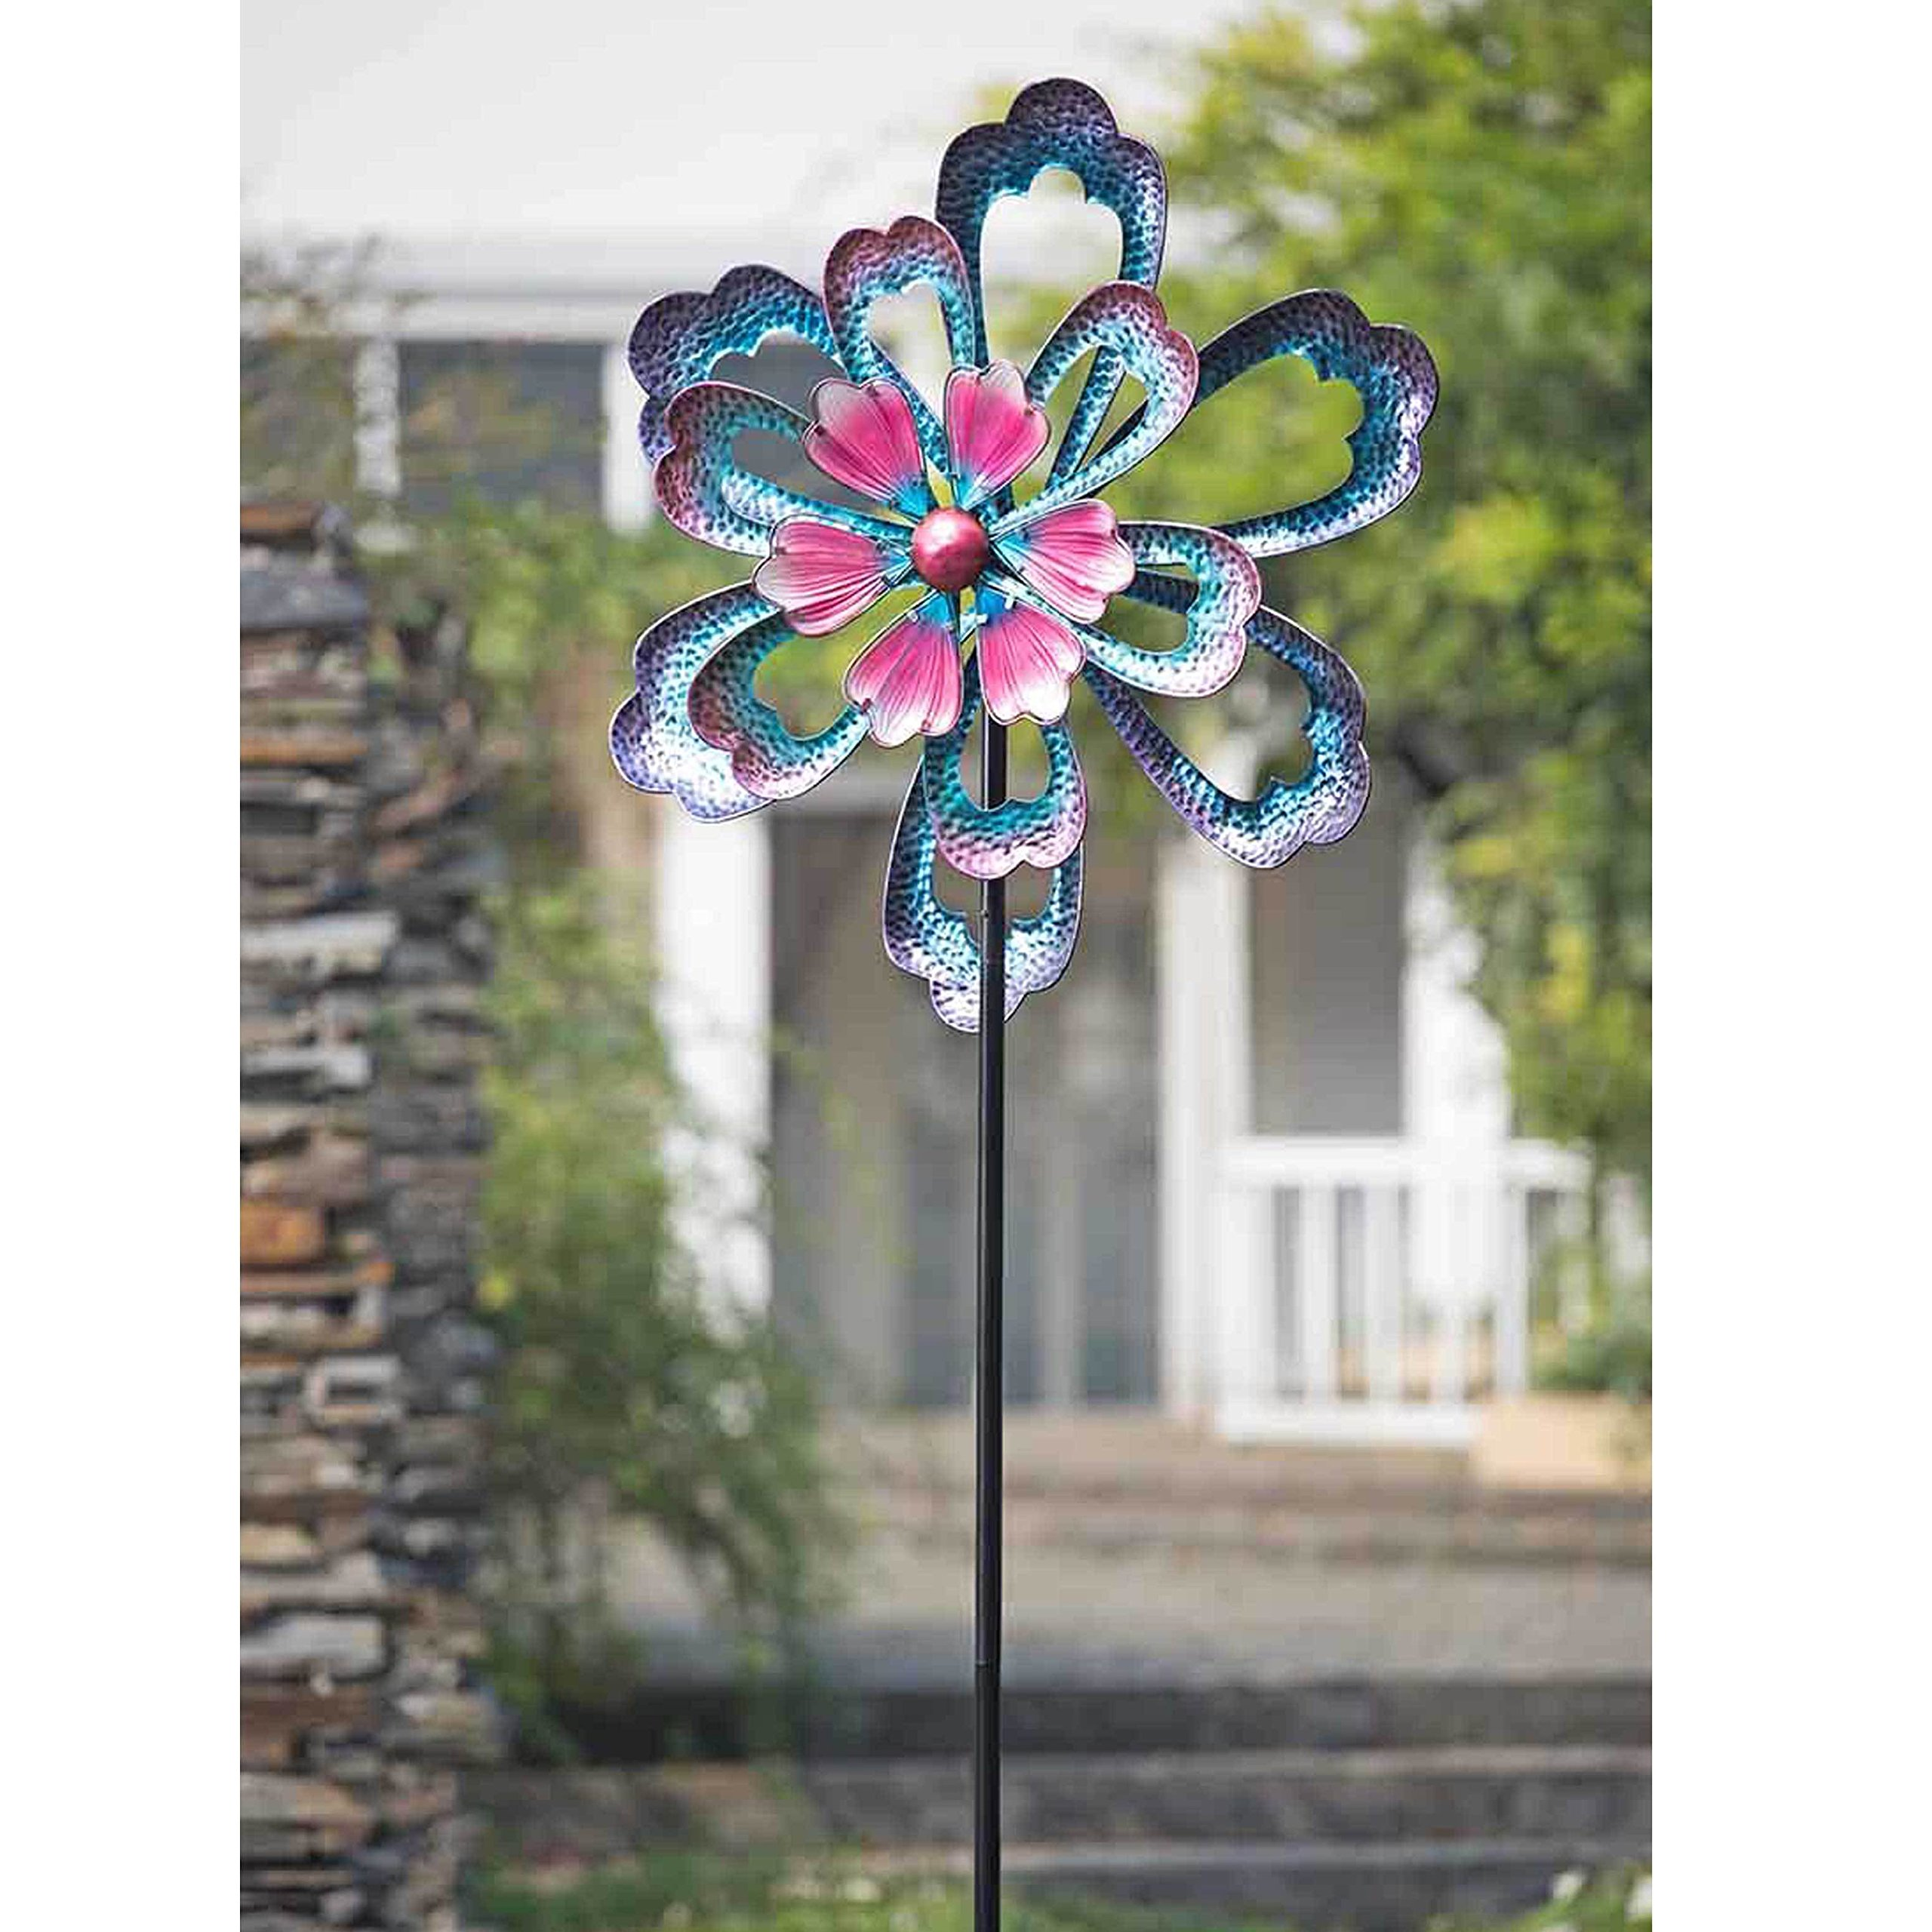 Metal Garden Flower Stakes Spinner Purple, 88 Inches - 110309008. 22.2 in. L x 9.1 in. W x 69.1 in. H by sunjoy